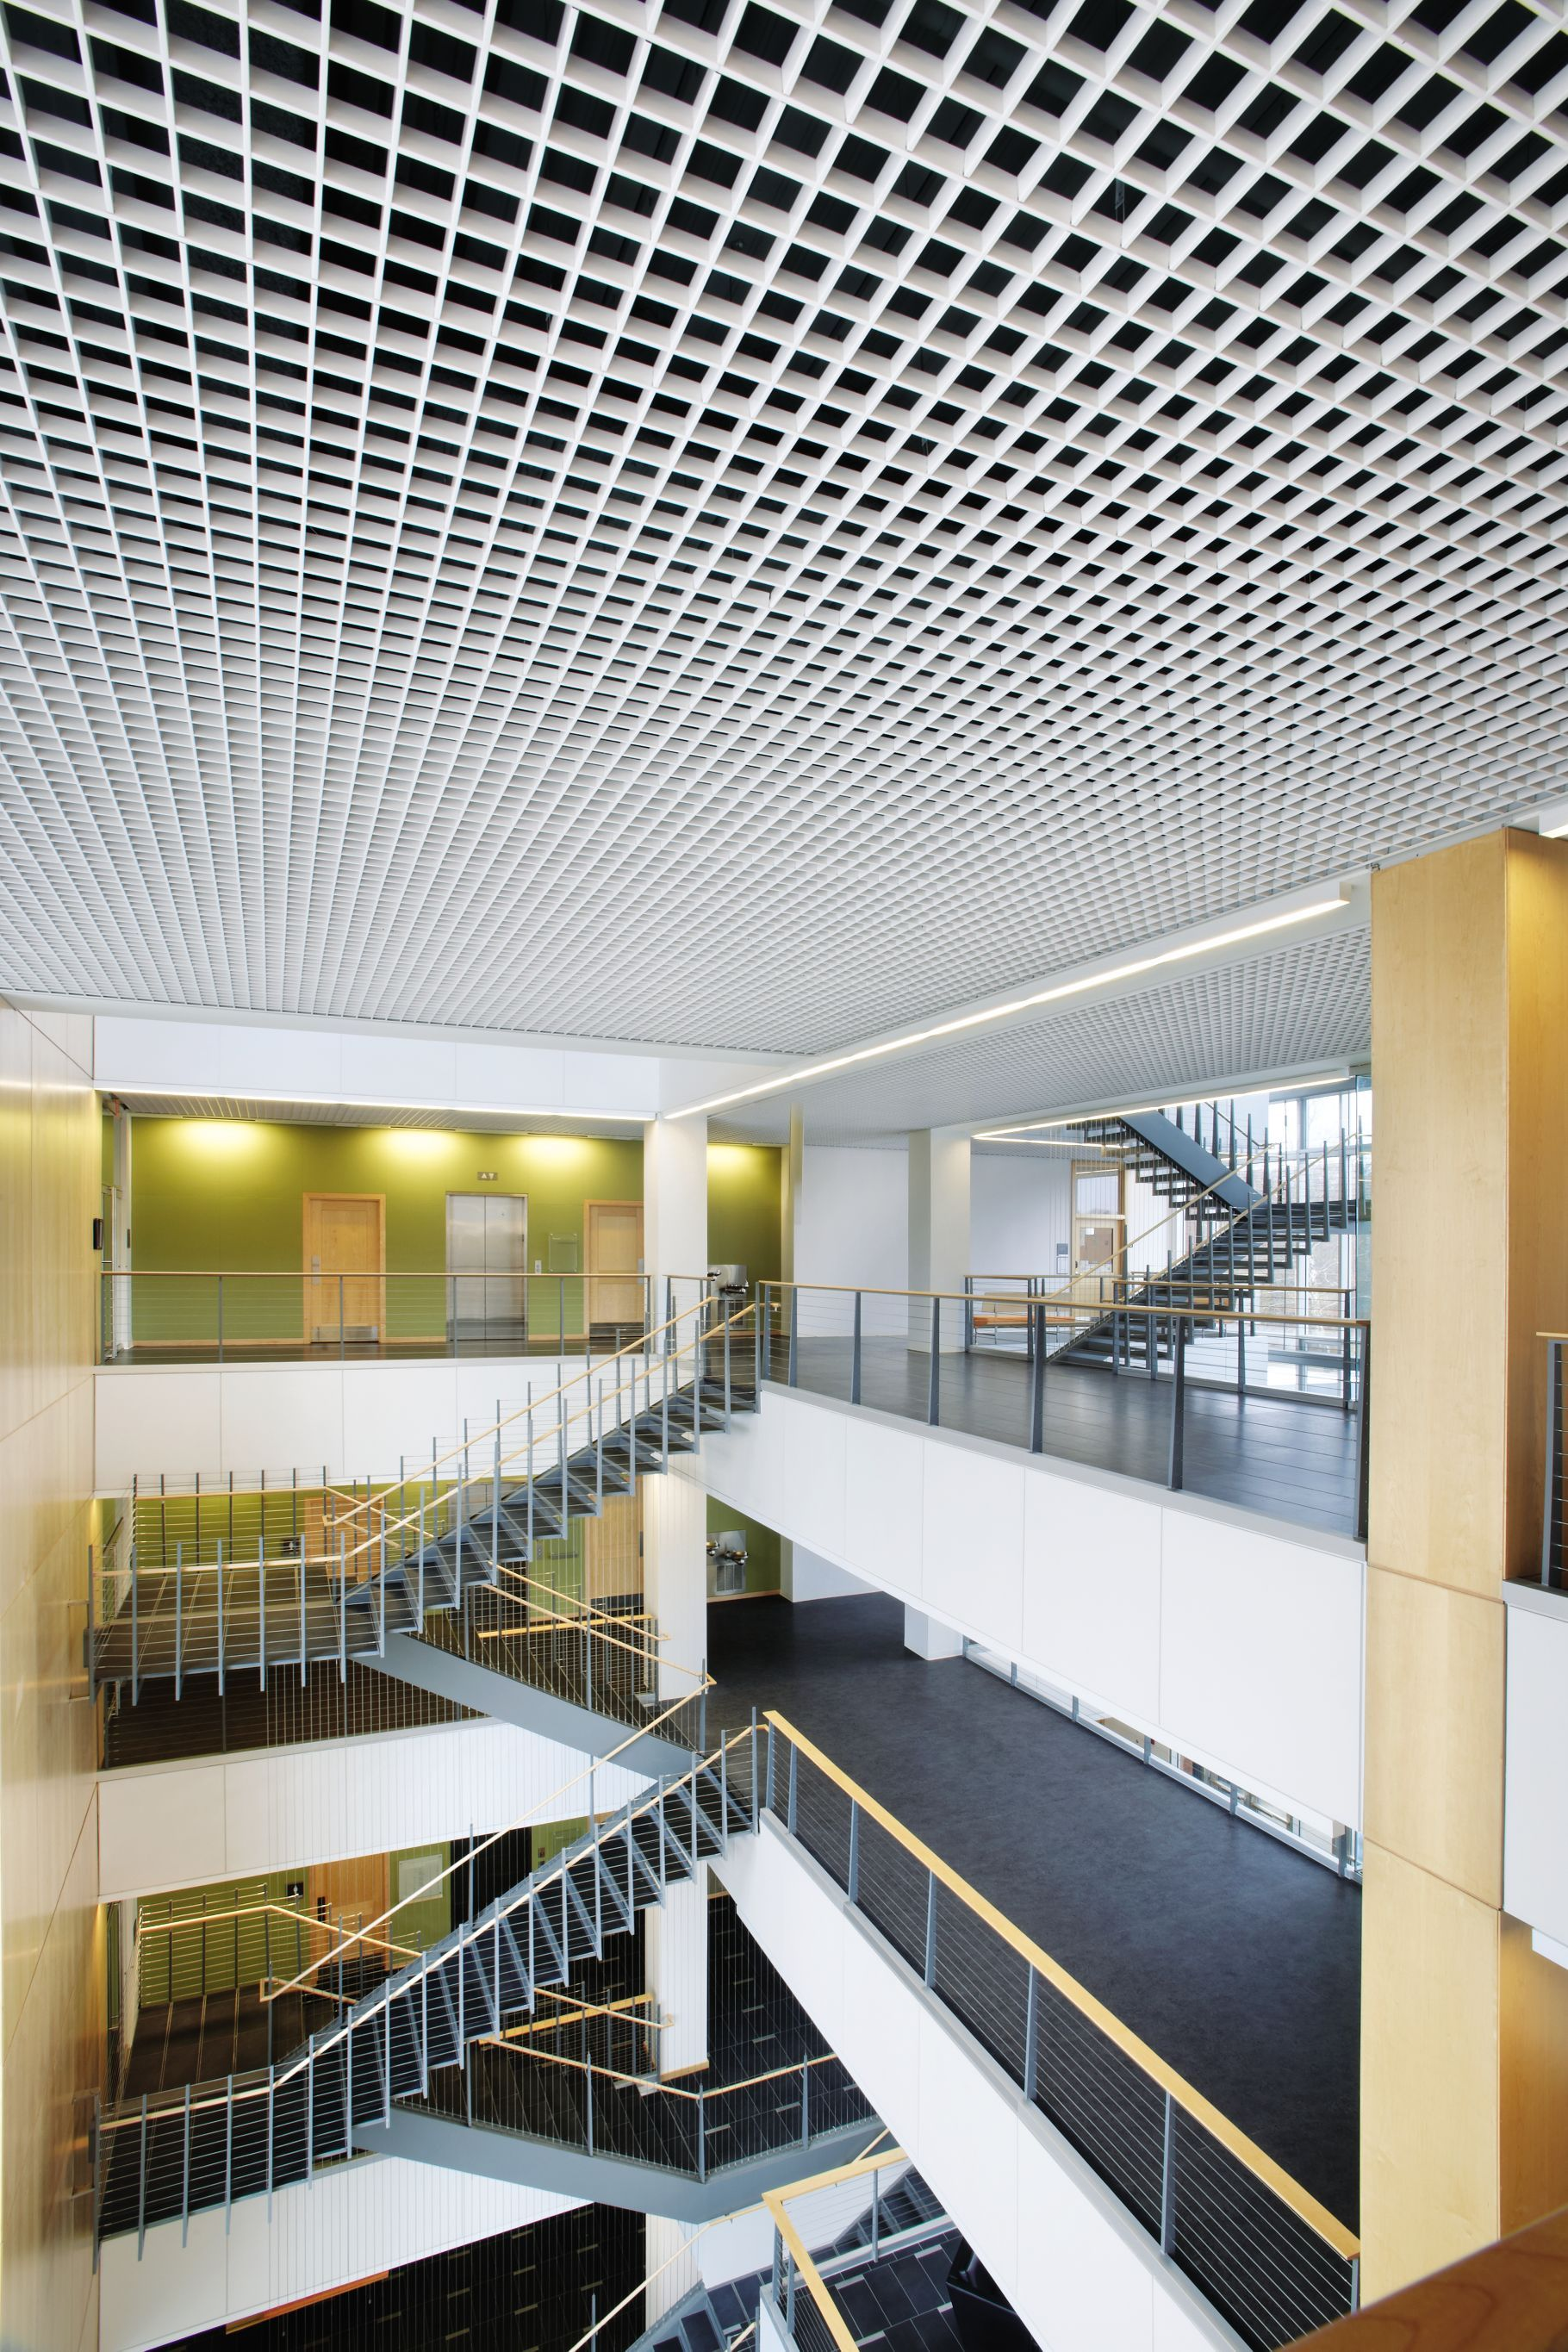 Commercial Ceilings Metal Metalworks Open Cell Cellio